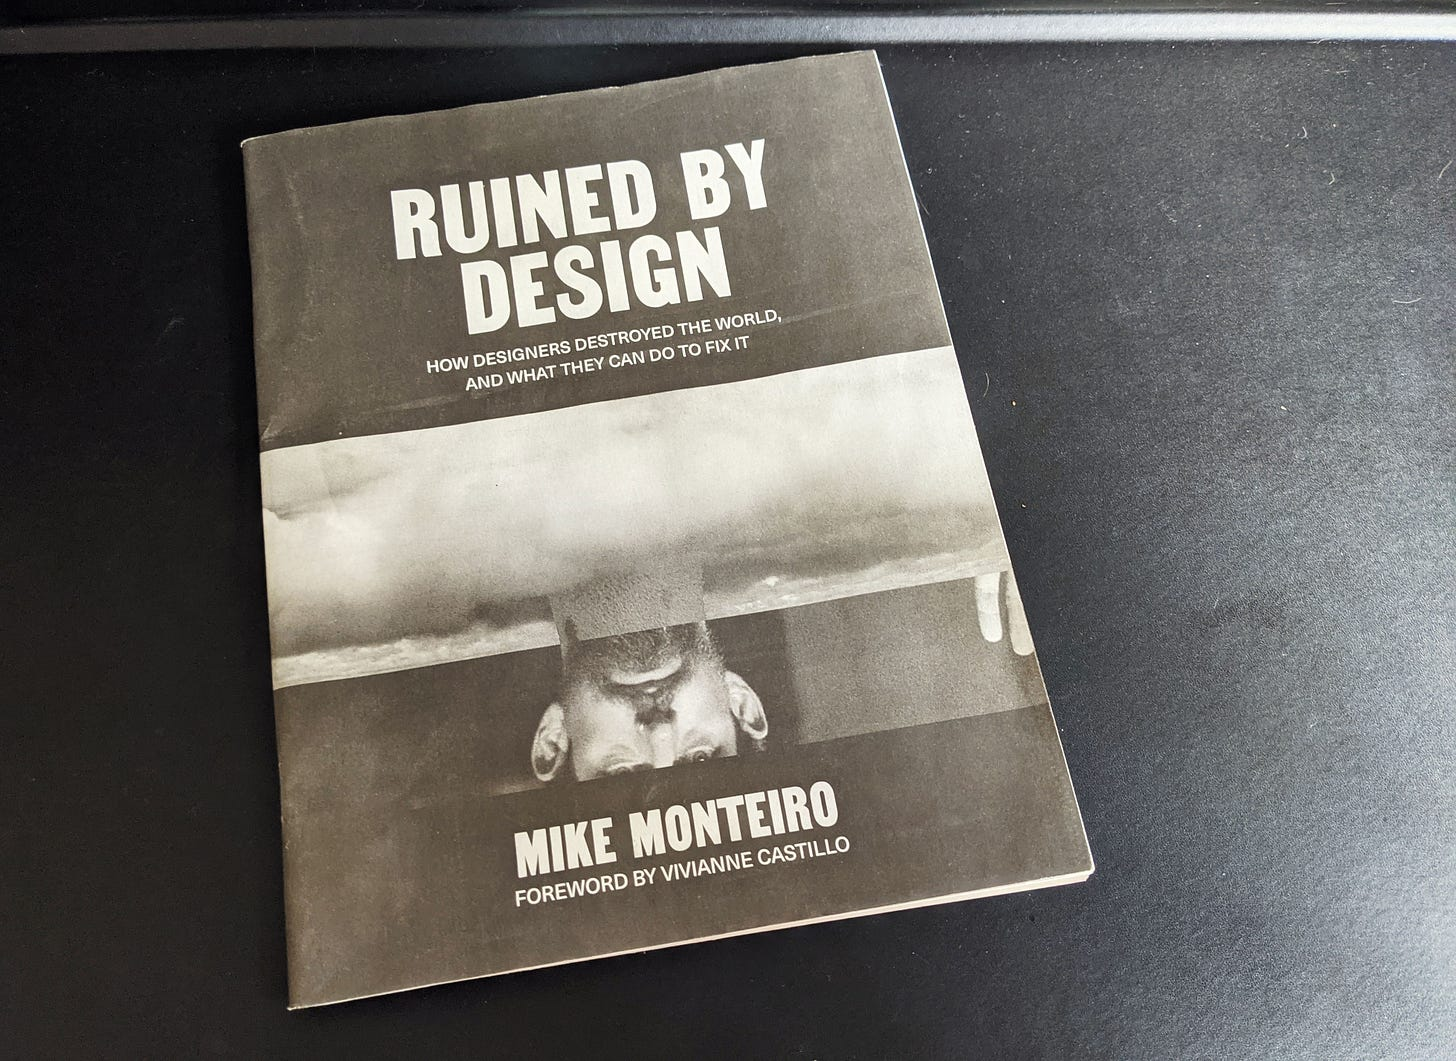 The Ruined by Design Book - the Dirty Punk Econo Zine version.